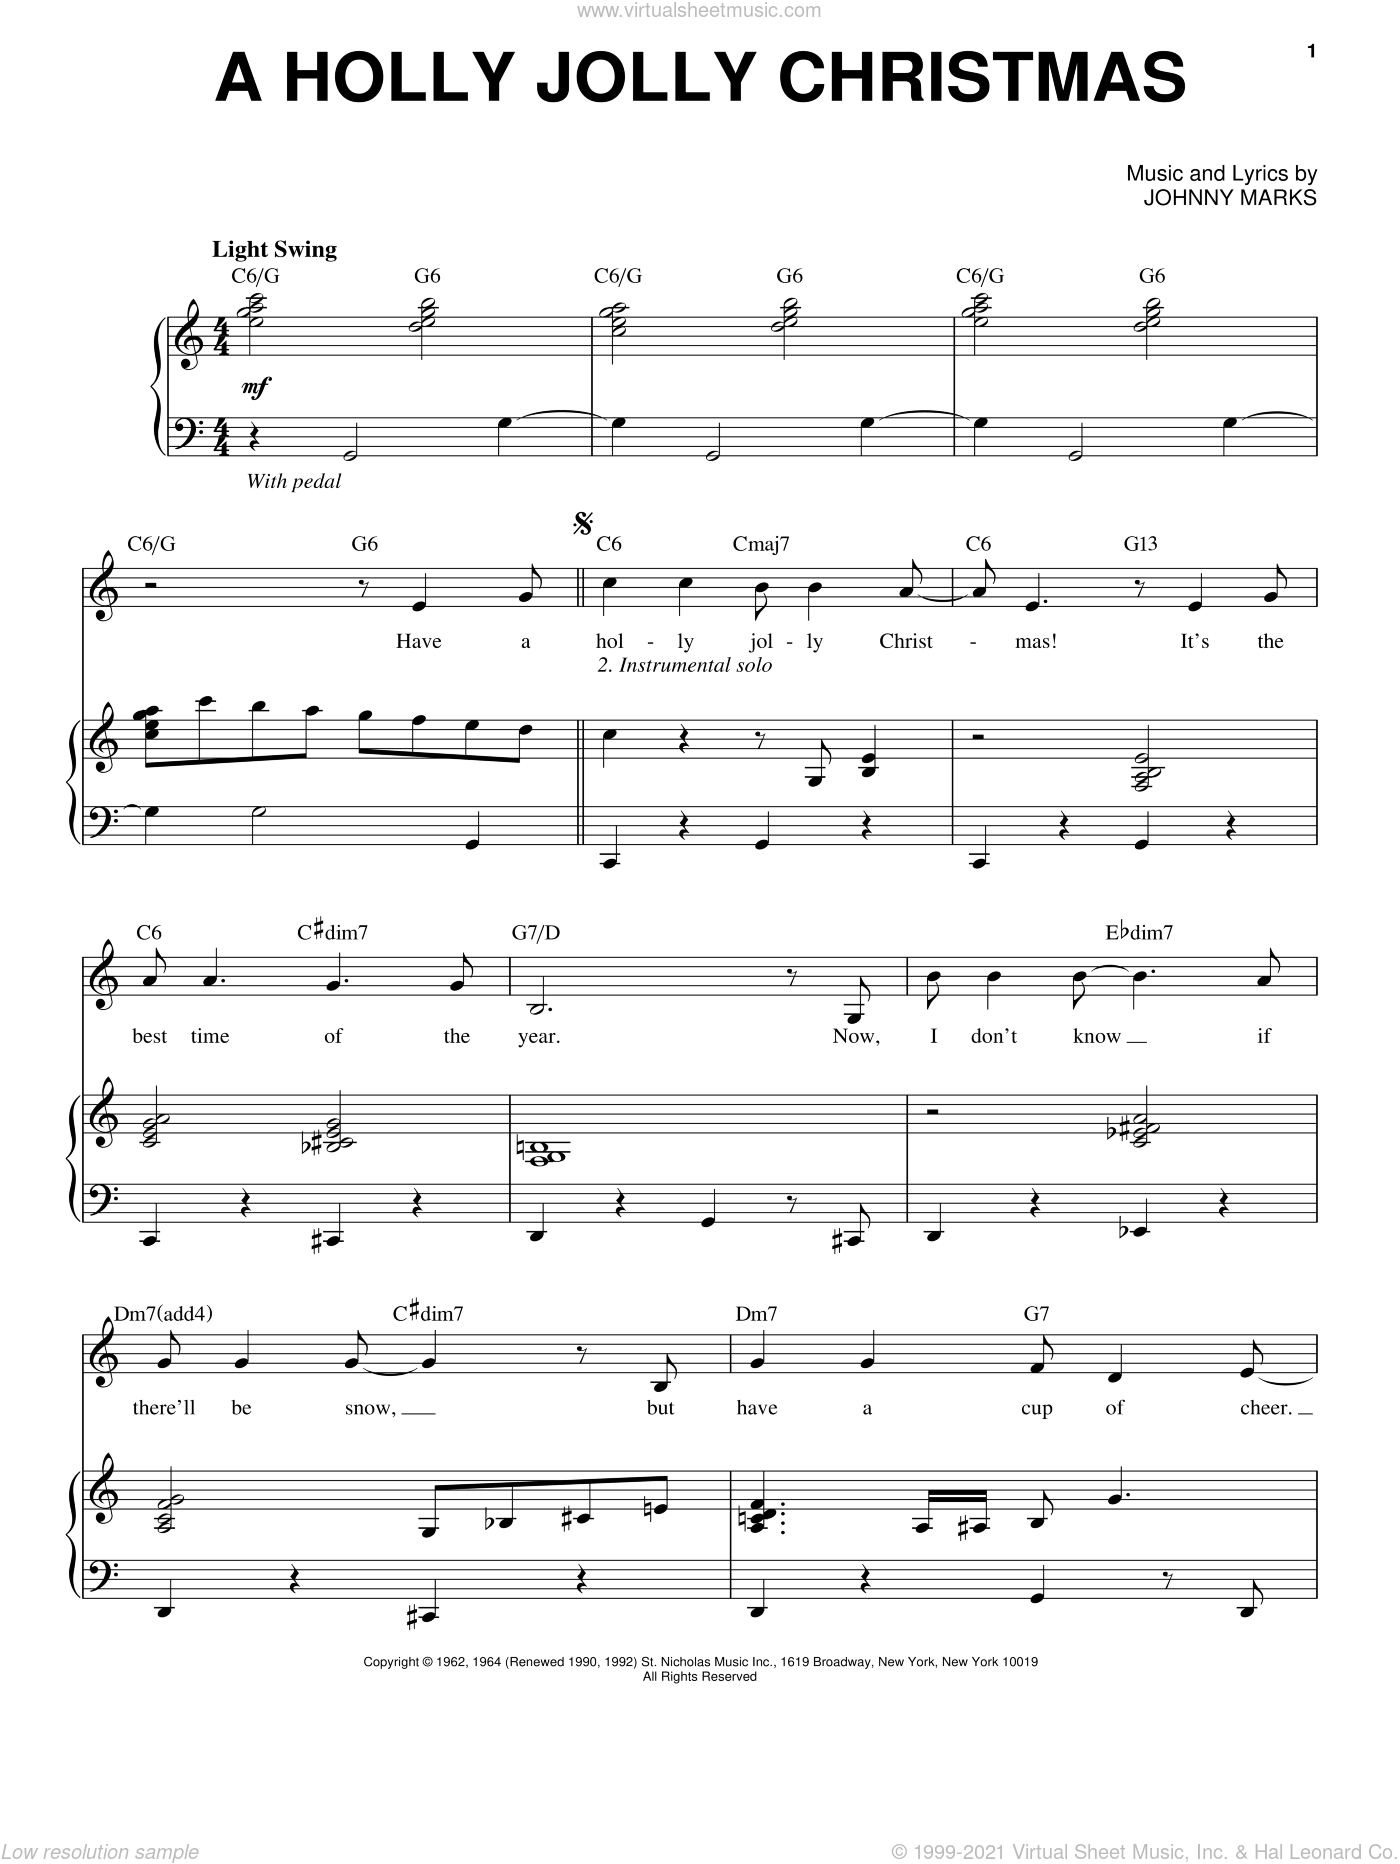 A Holly Jolly Christmas sheet music for voice and piano by Michael Buble and Johnny Marks, intermediate skill level